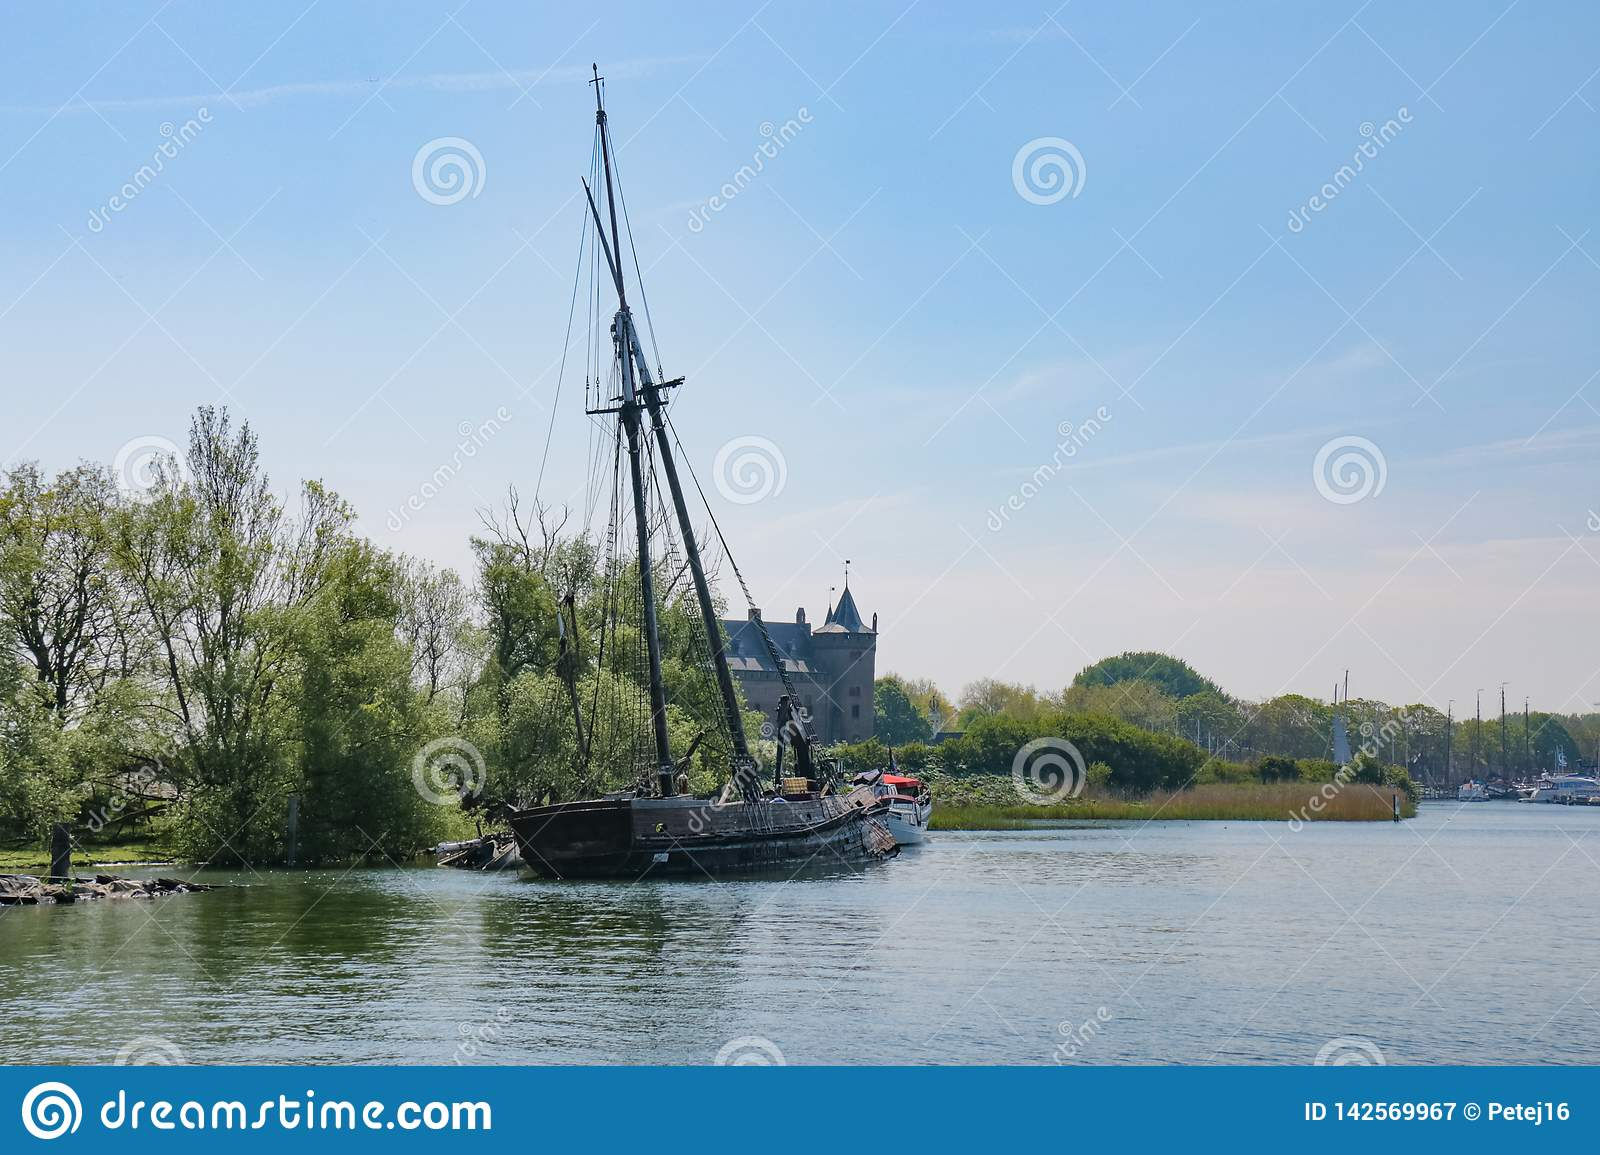 Old wrecked sailing ship on side of river canal